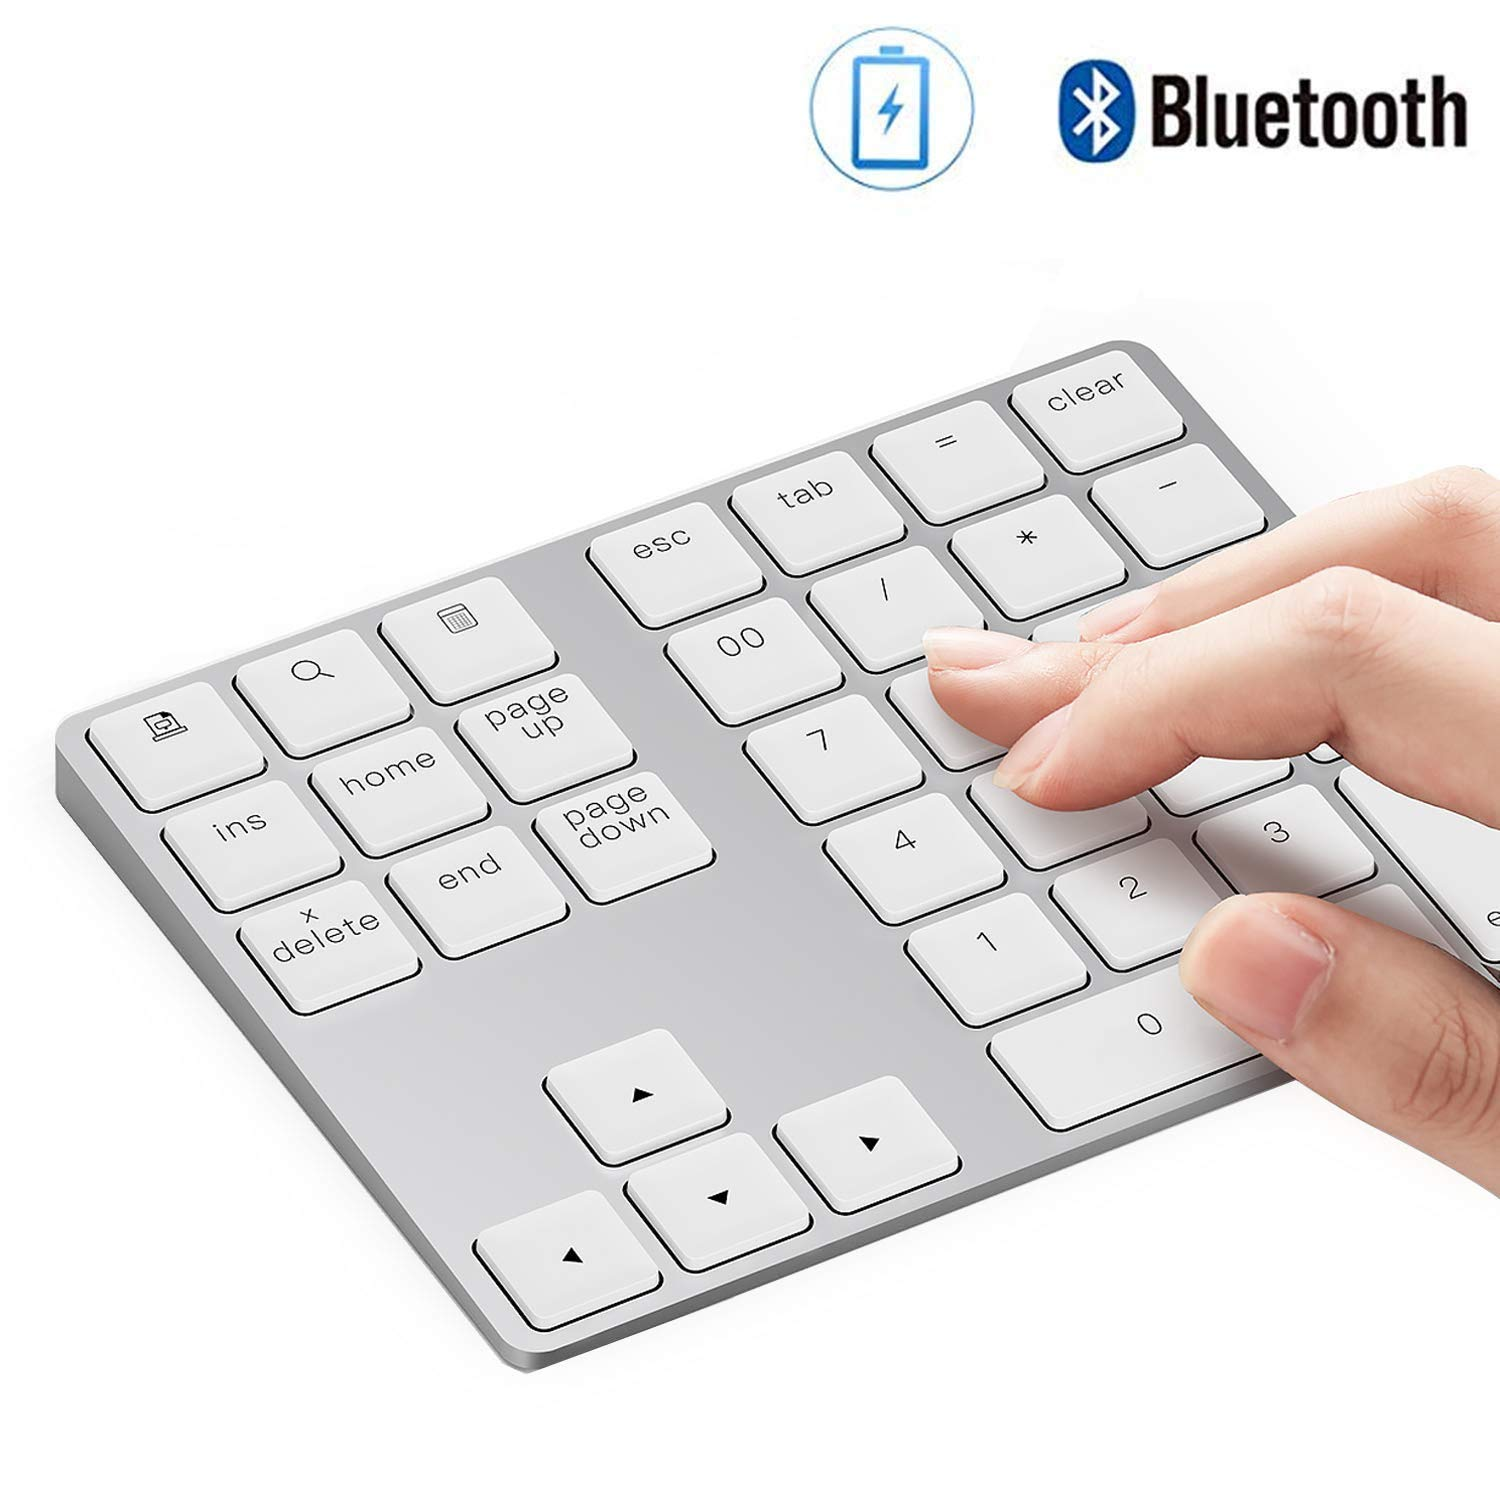 Bluetooth Number Pad, Lekvey Aluminum Rechargeable Wireless Numeric Keypad Slim 34-Keys External Numpad Keyboard Data Entry for Laptop, MacBook, MacBook Air/Pro, iMac, Windows, Surface Pro - Silver by LEKVEY